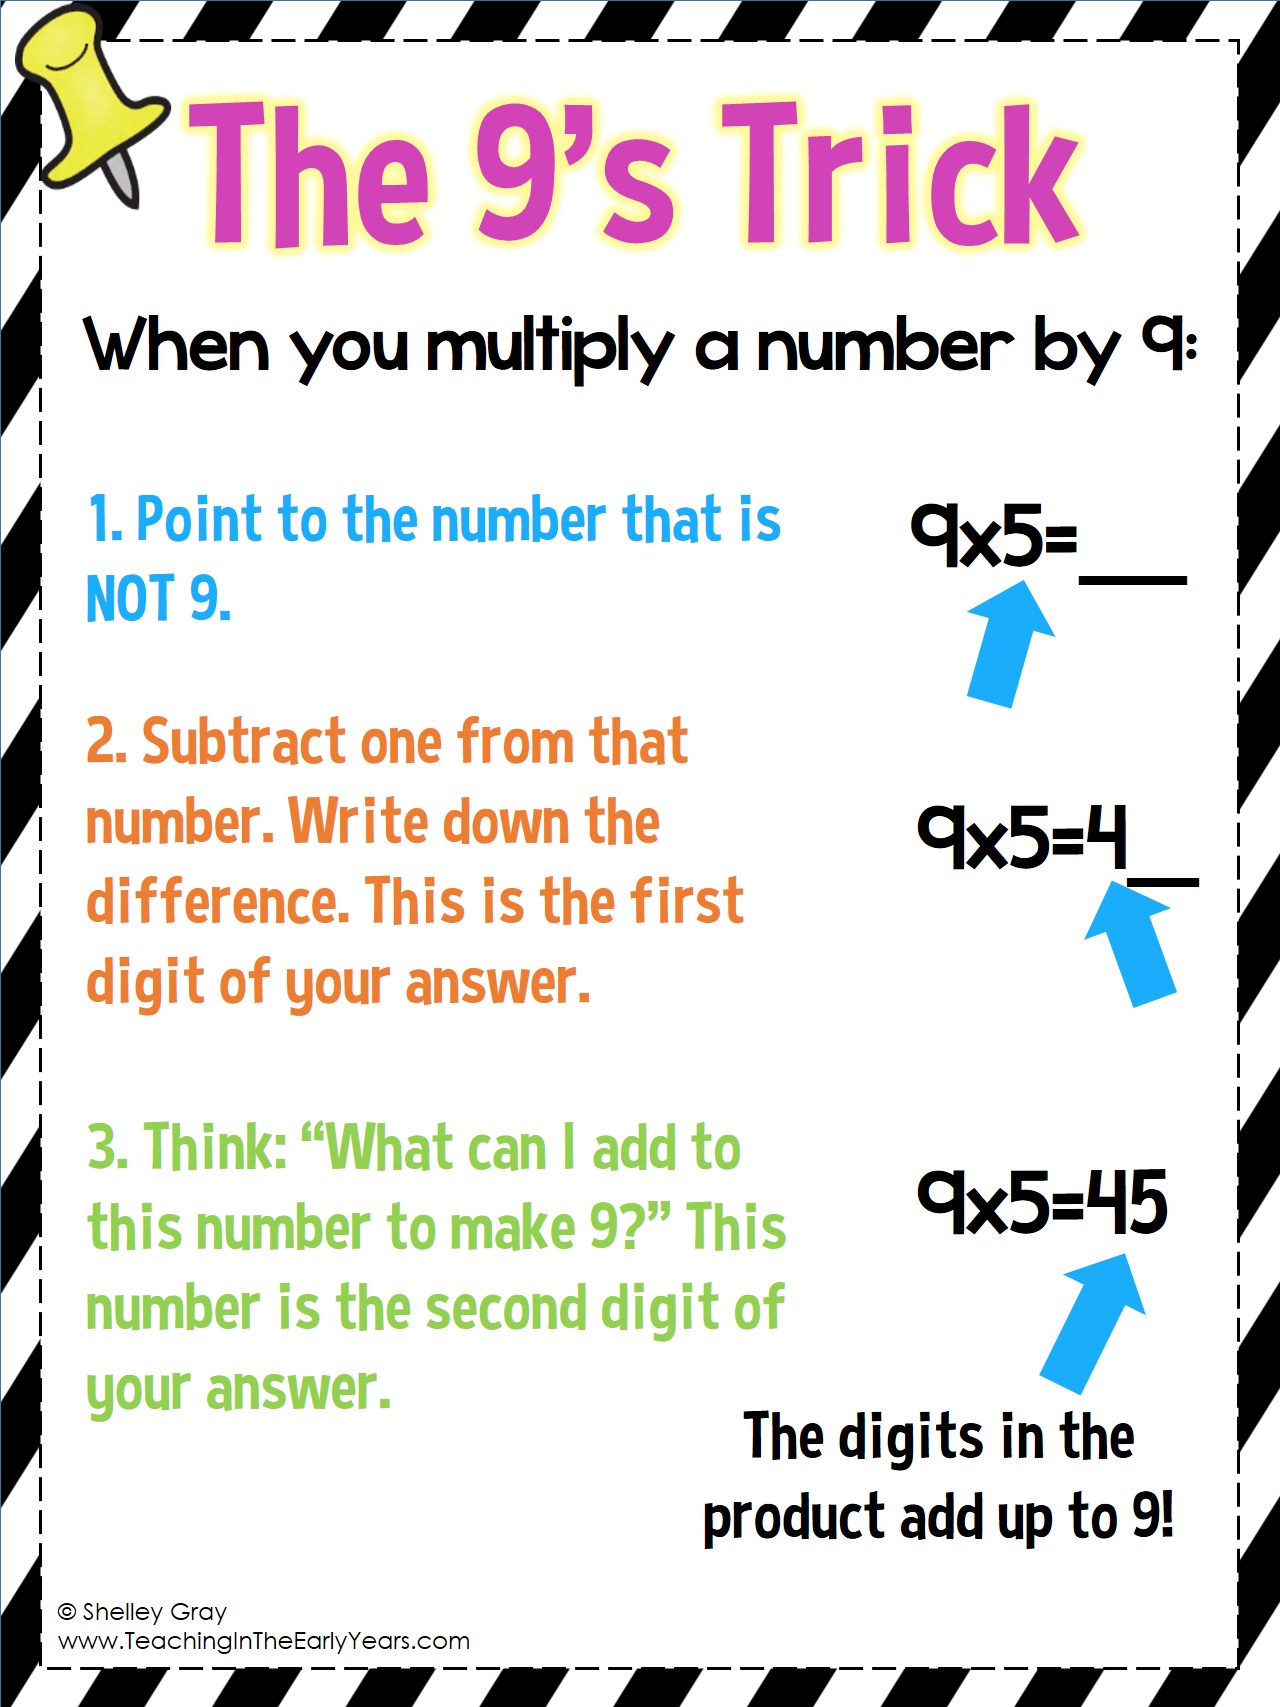 the 9s trick for multiplication my cousins grandfather showed me this when i was 17 but i never understood it until now